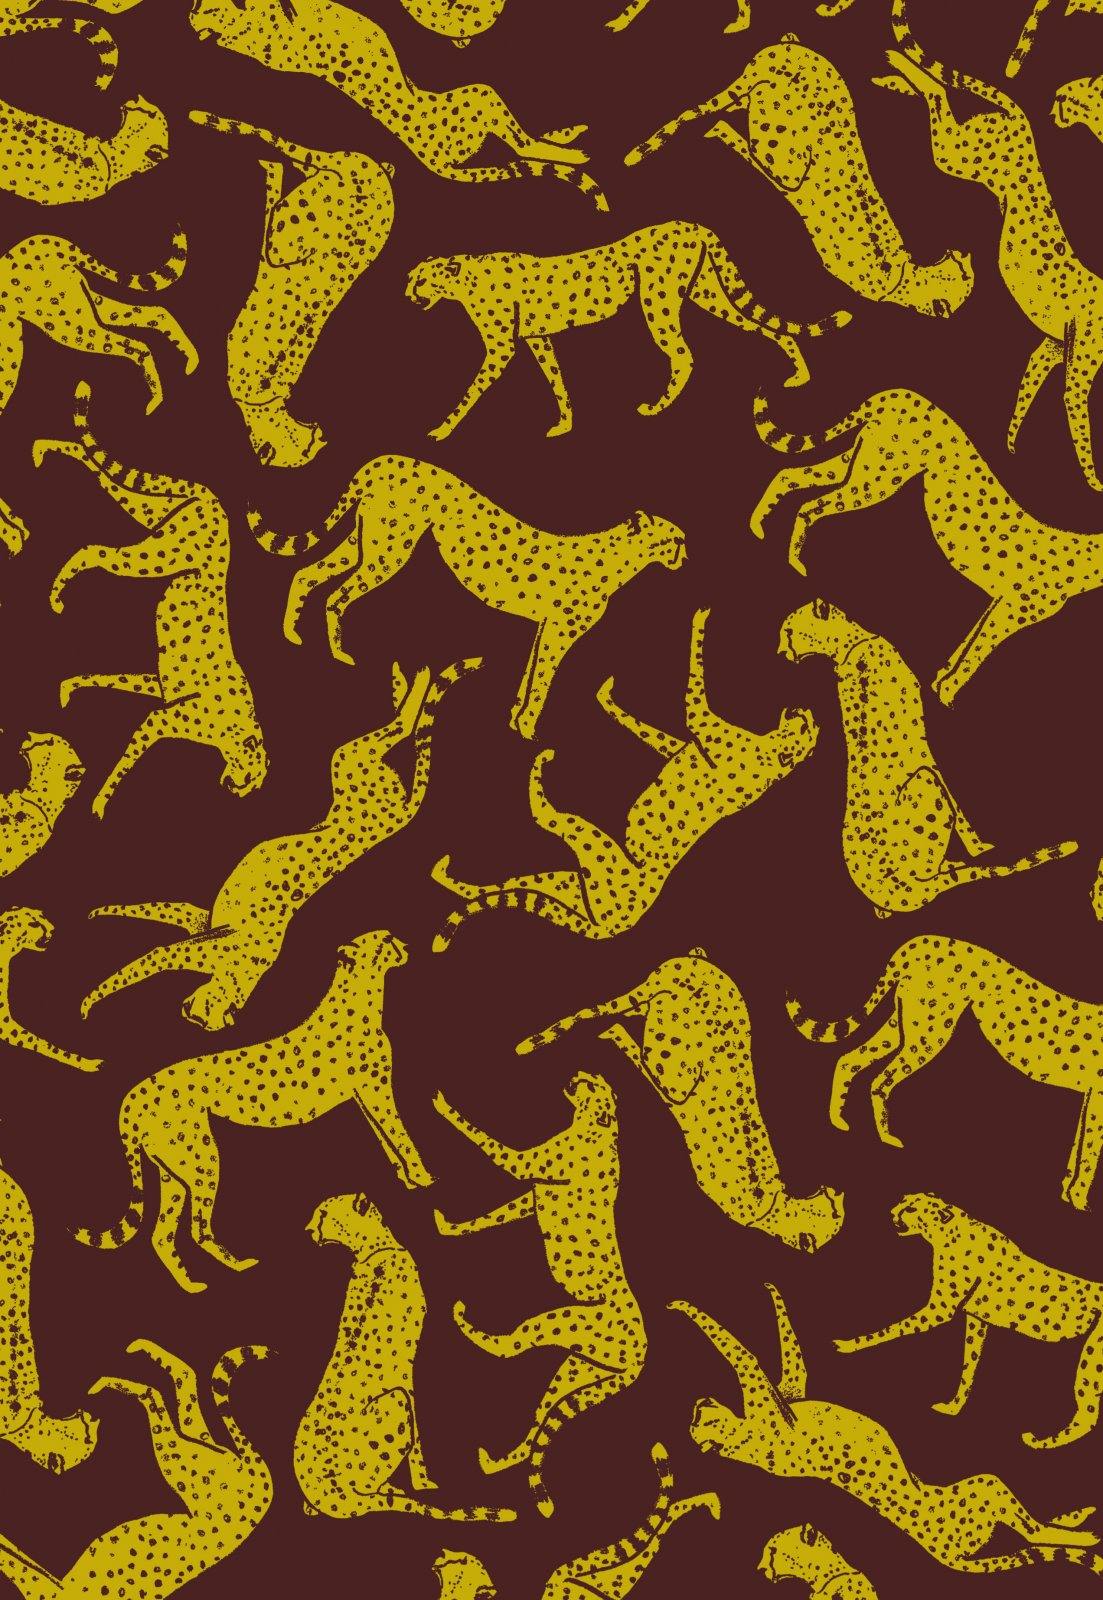 Jane Makower United Kingdom England Retro Cheetah Big Cat Wildlife UK Cotton Quilt Fabric JM08